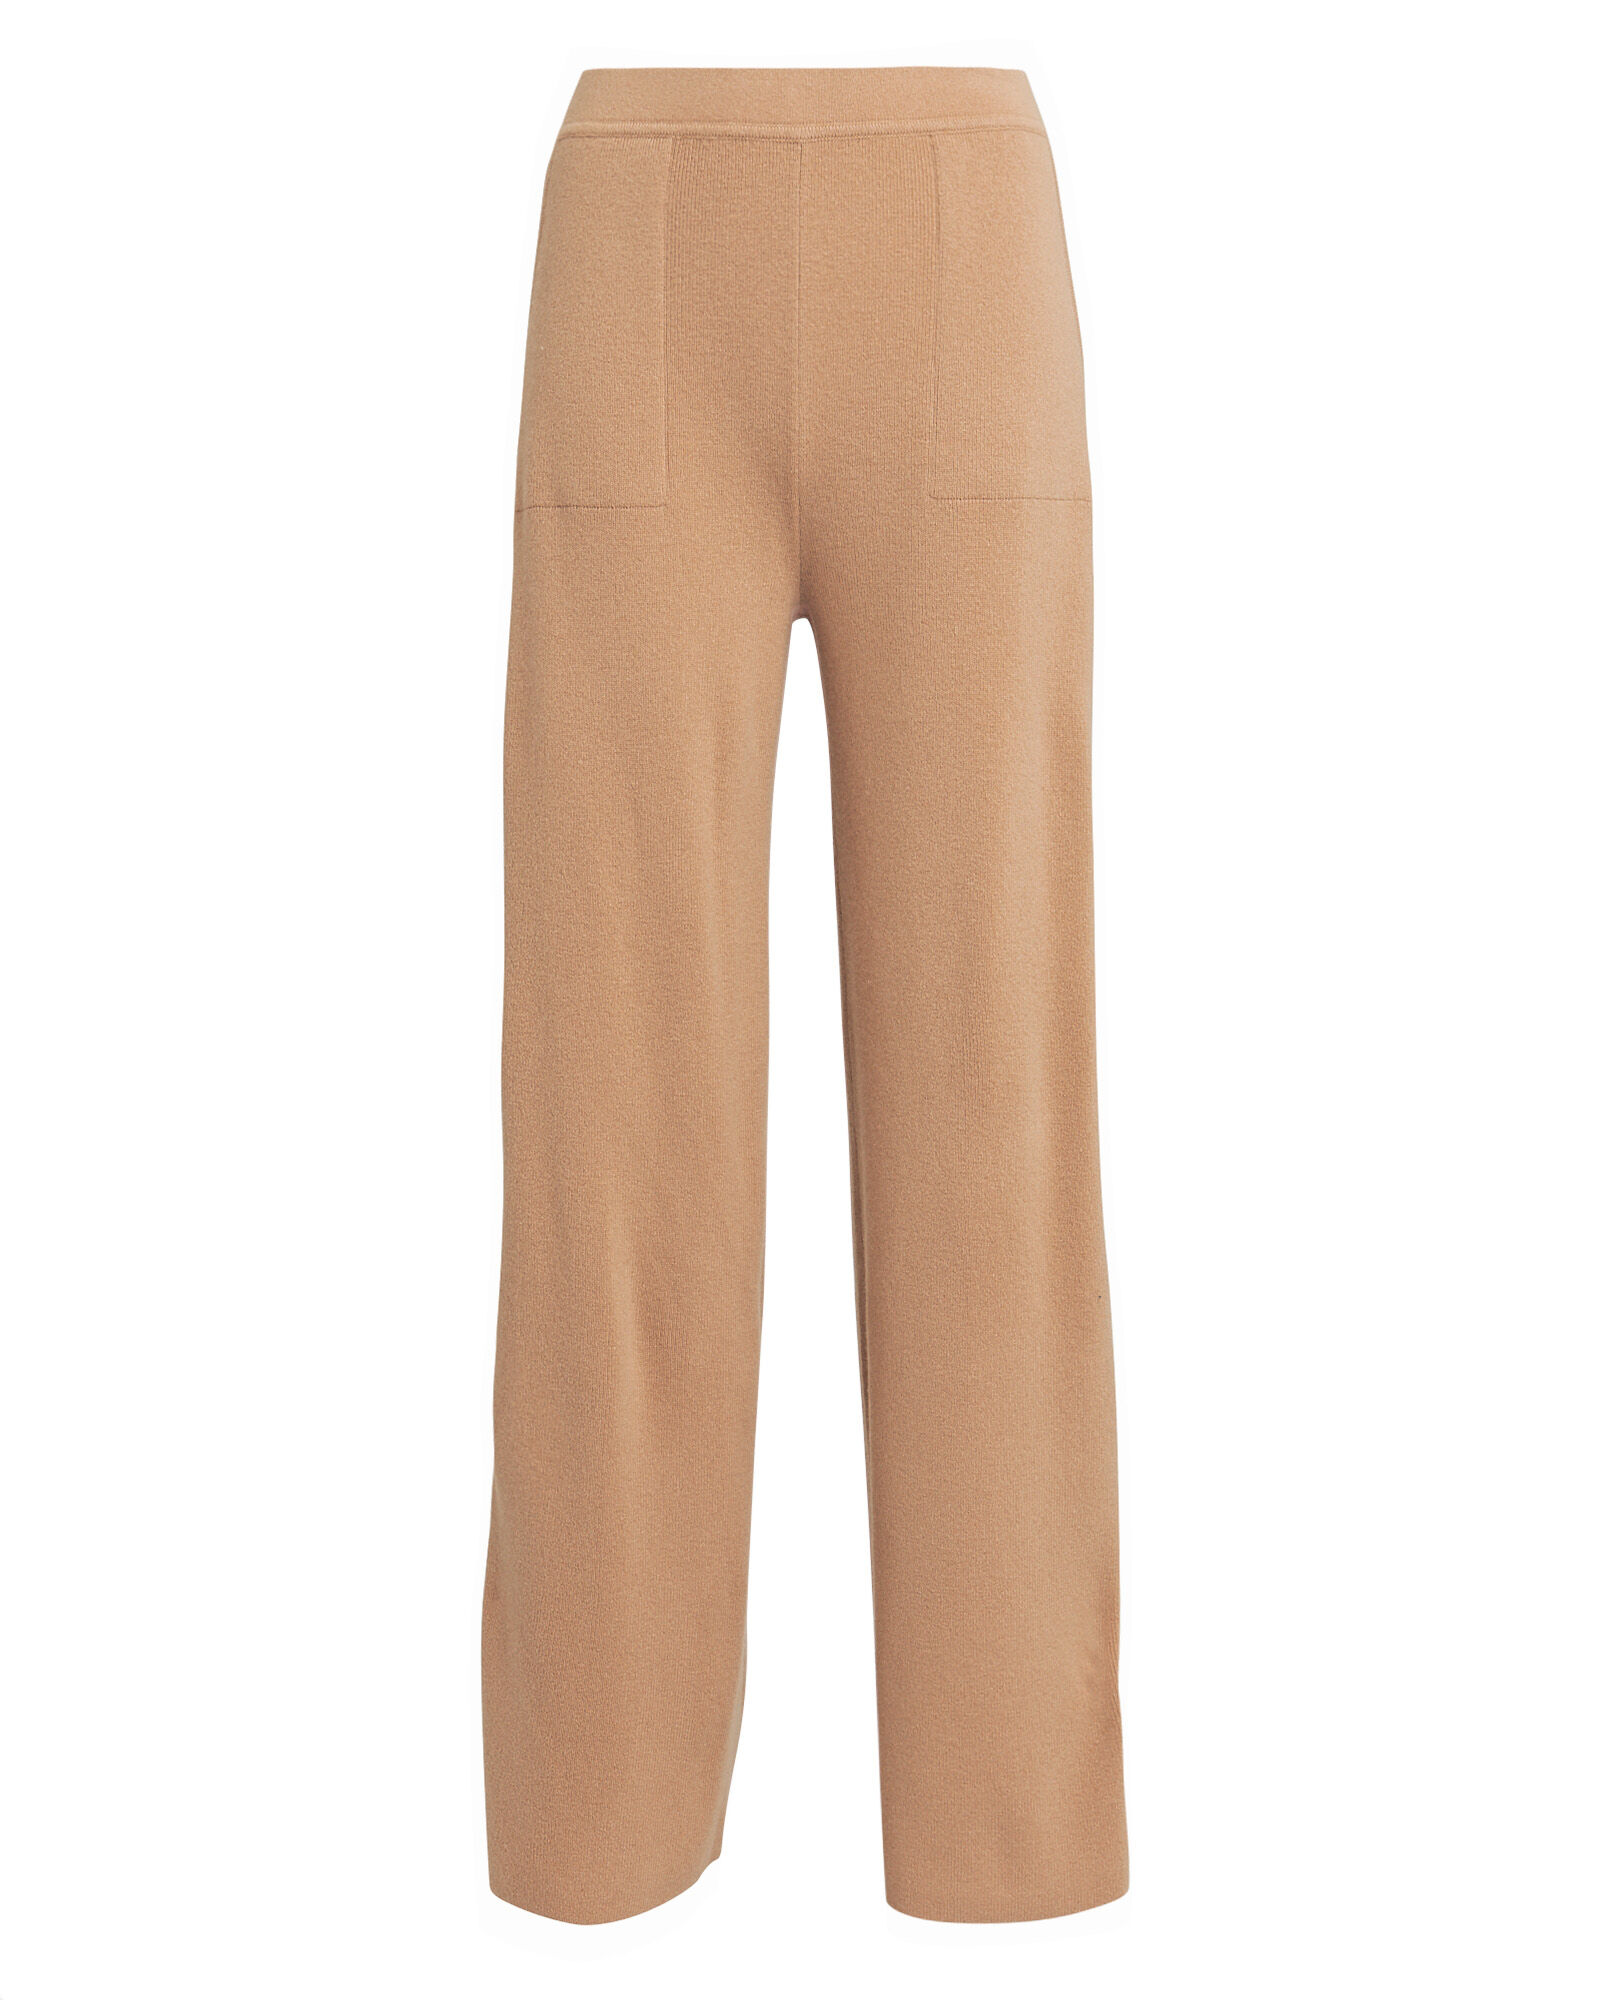 Willow Wool-Cashmere Knit Pants, BEIGE, hi-res